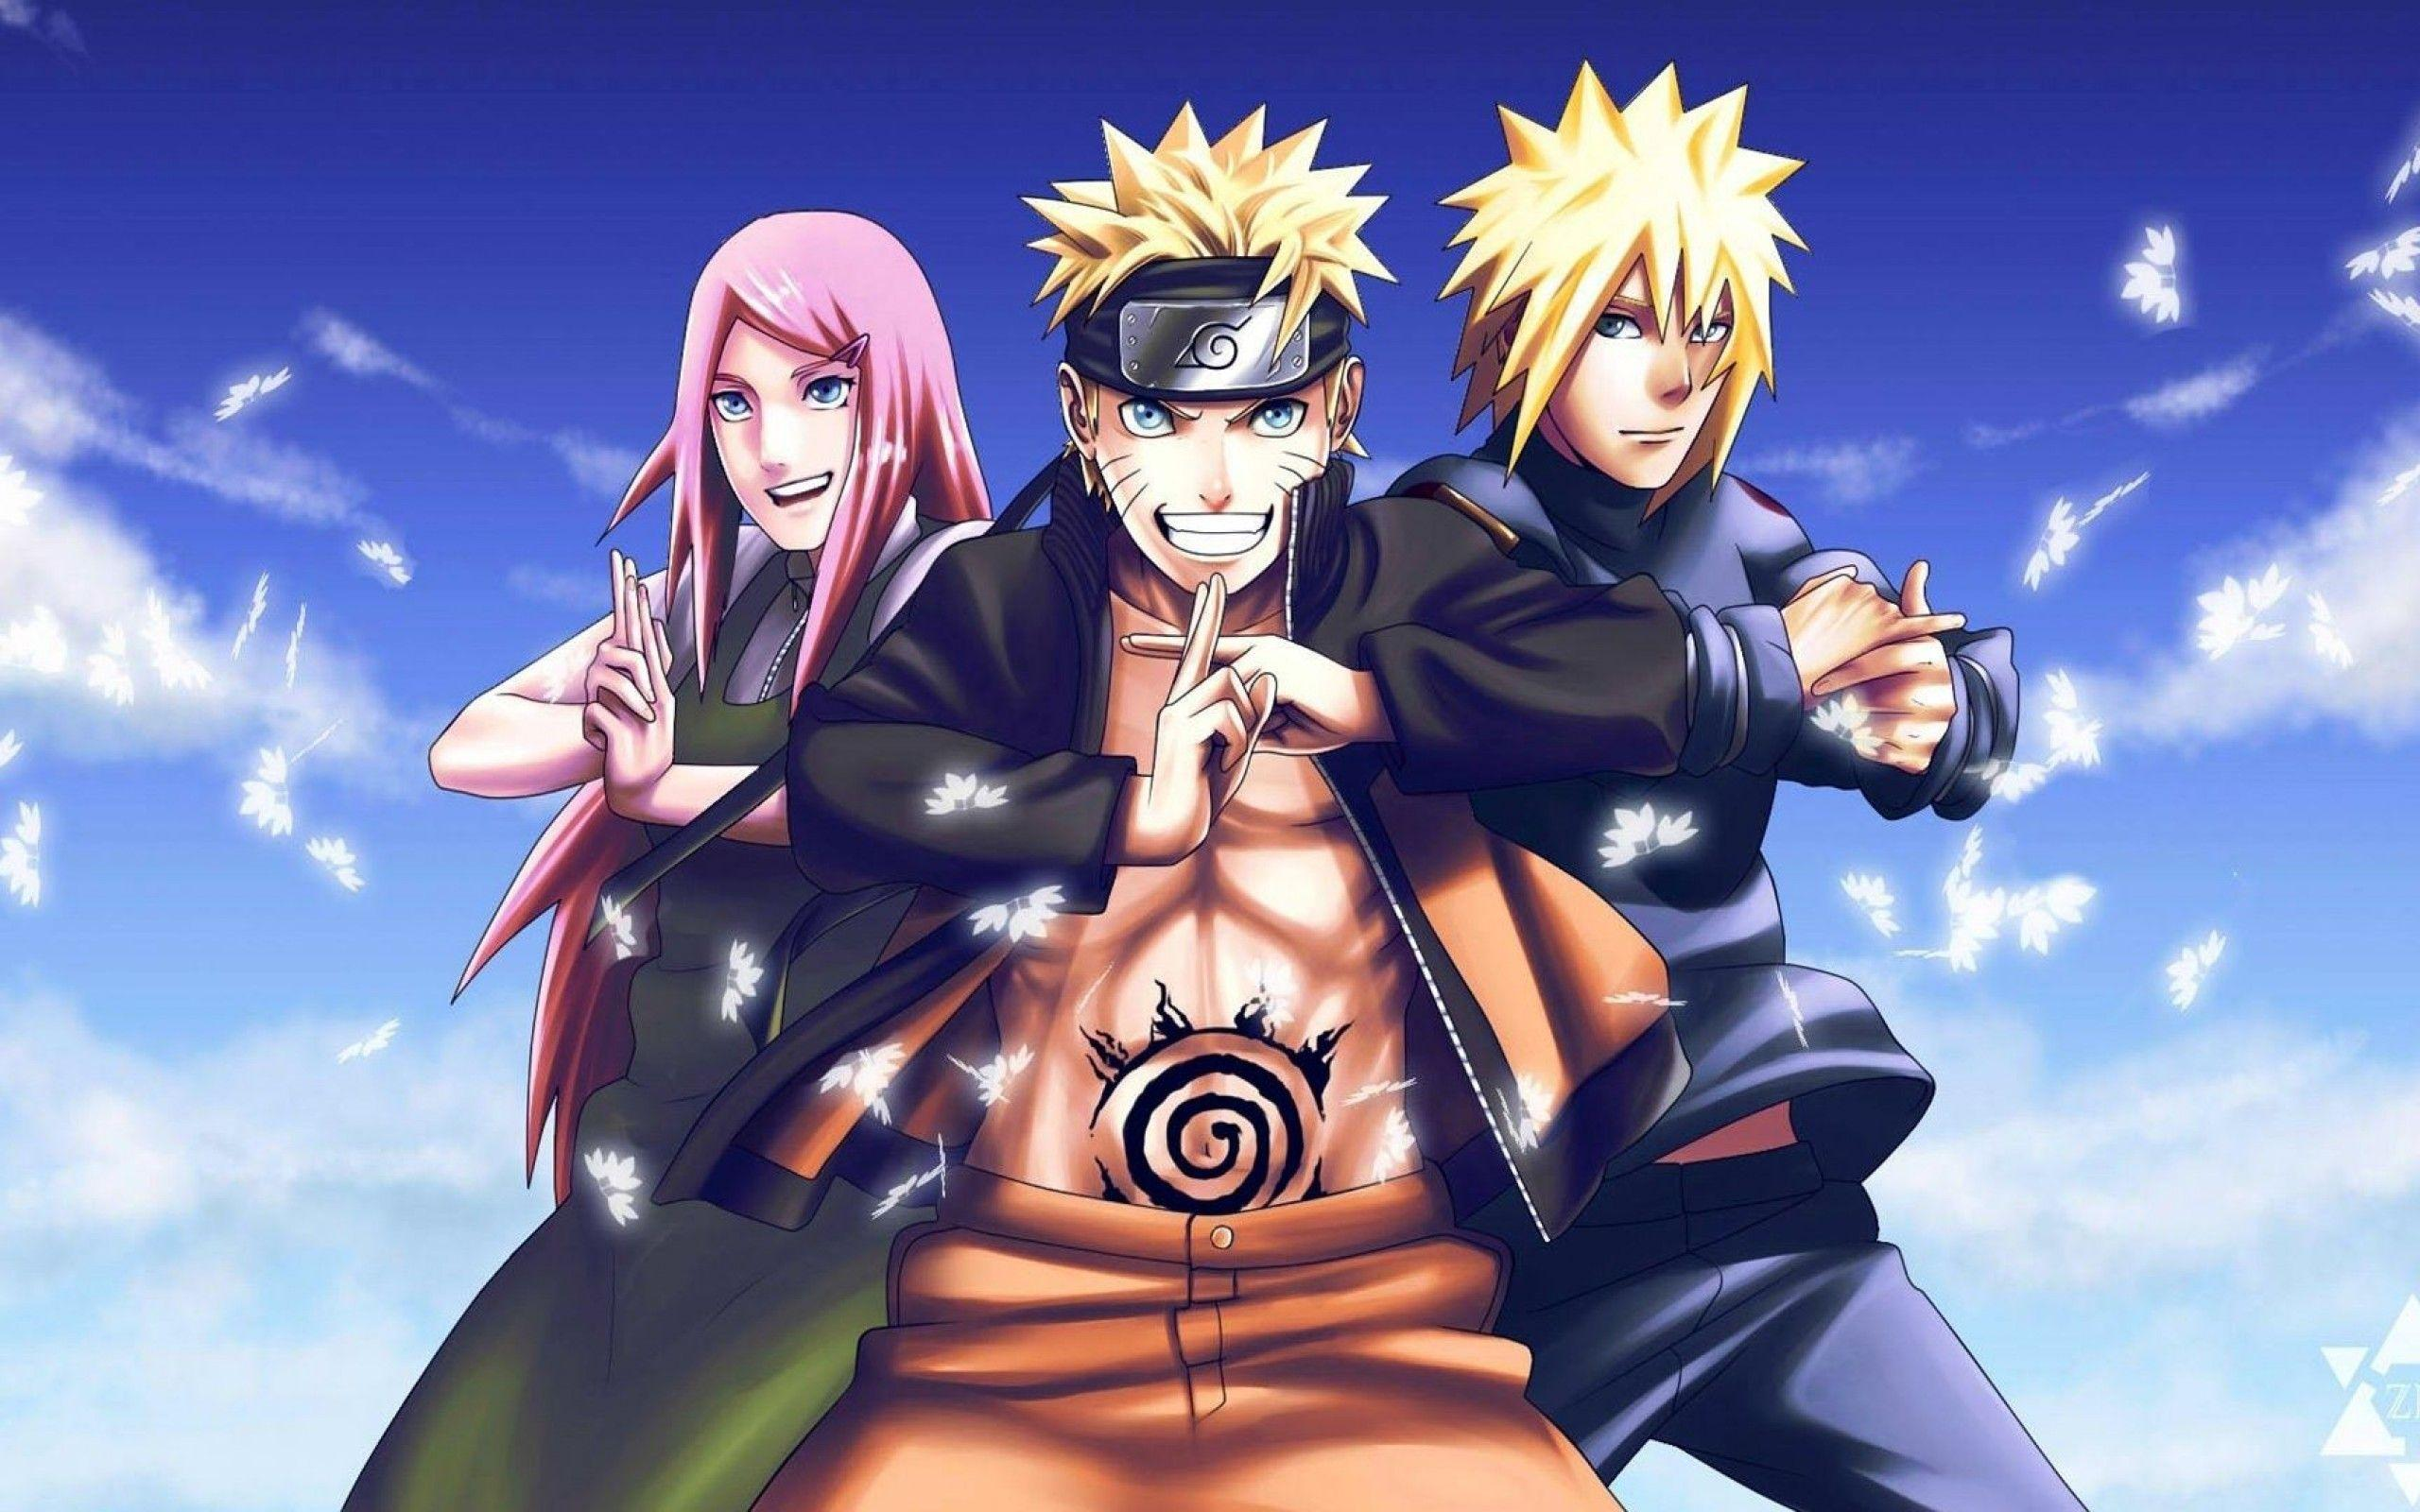 Wallpapers-HD-Naruto-Shippuden-Gallery-(77-Plus)-